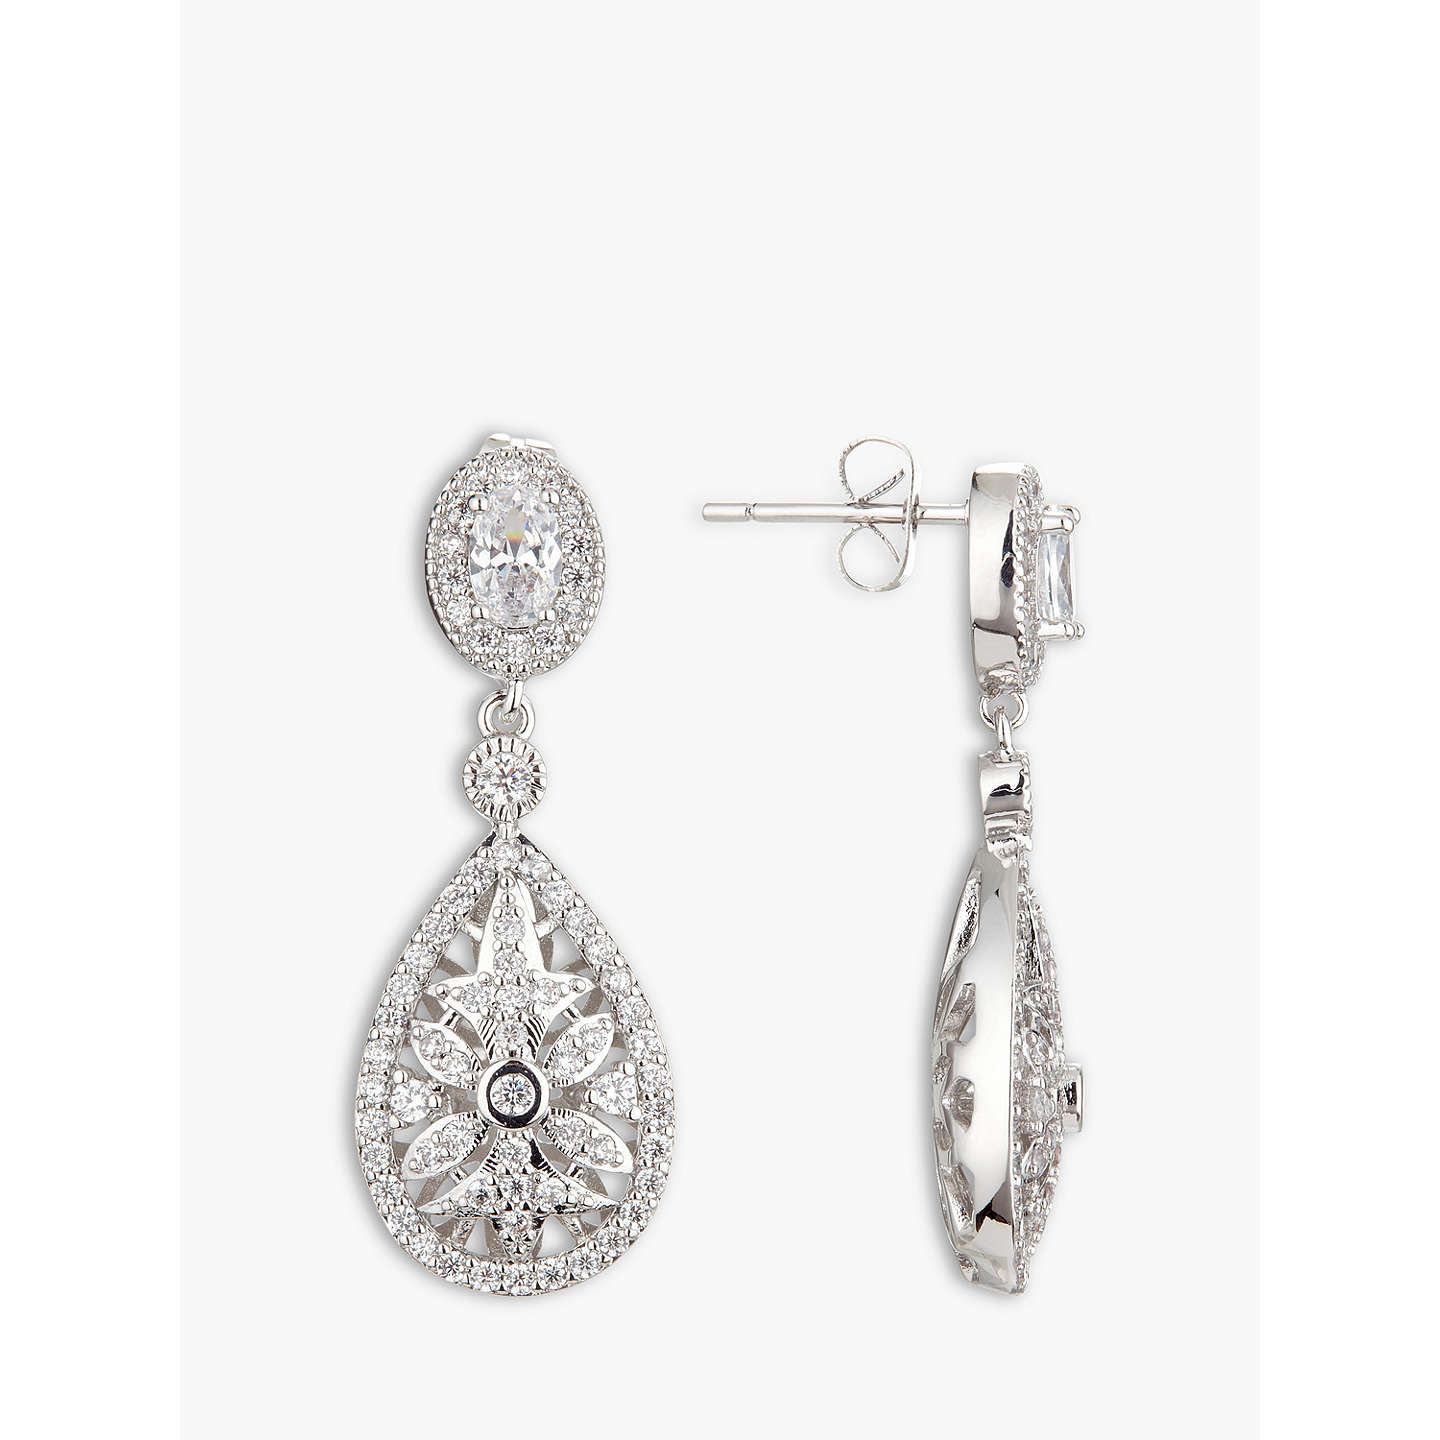 BuyIvory & Co. Stellar Detailed Cubic Zirconia Pave Teardrop Drop Earrings, Silver Online at johnlewis.com